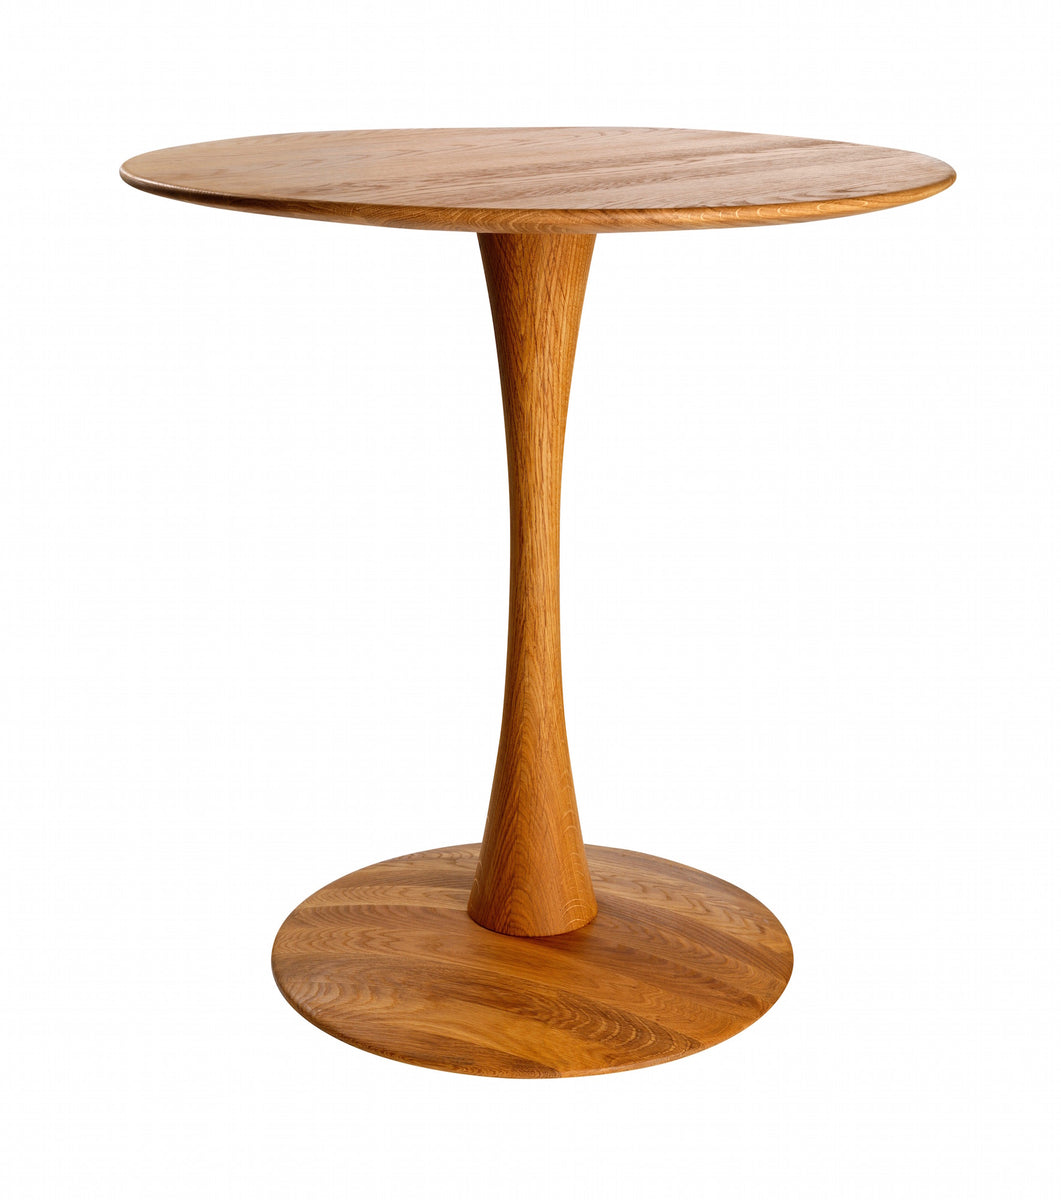 ND106 2-Seater Dining Table Nanna Ditzel - Image 1